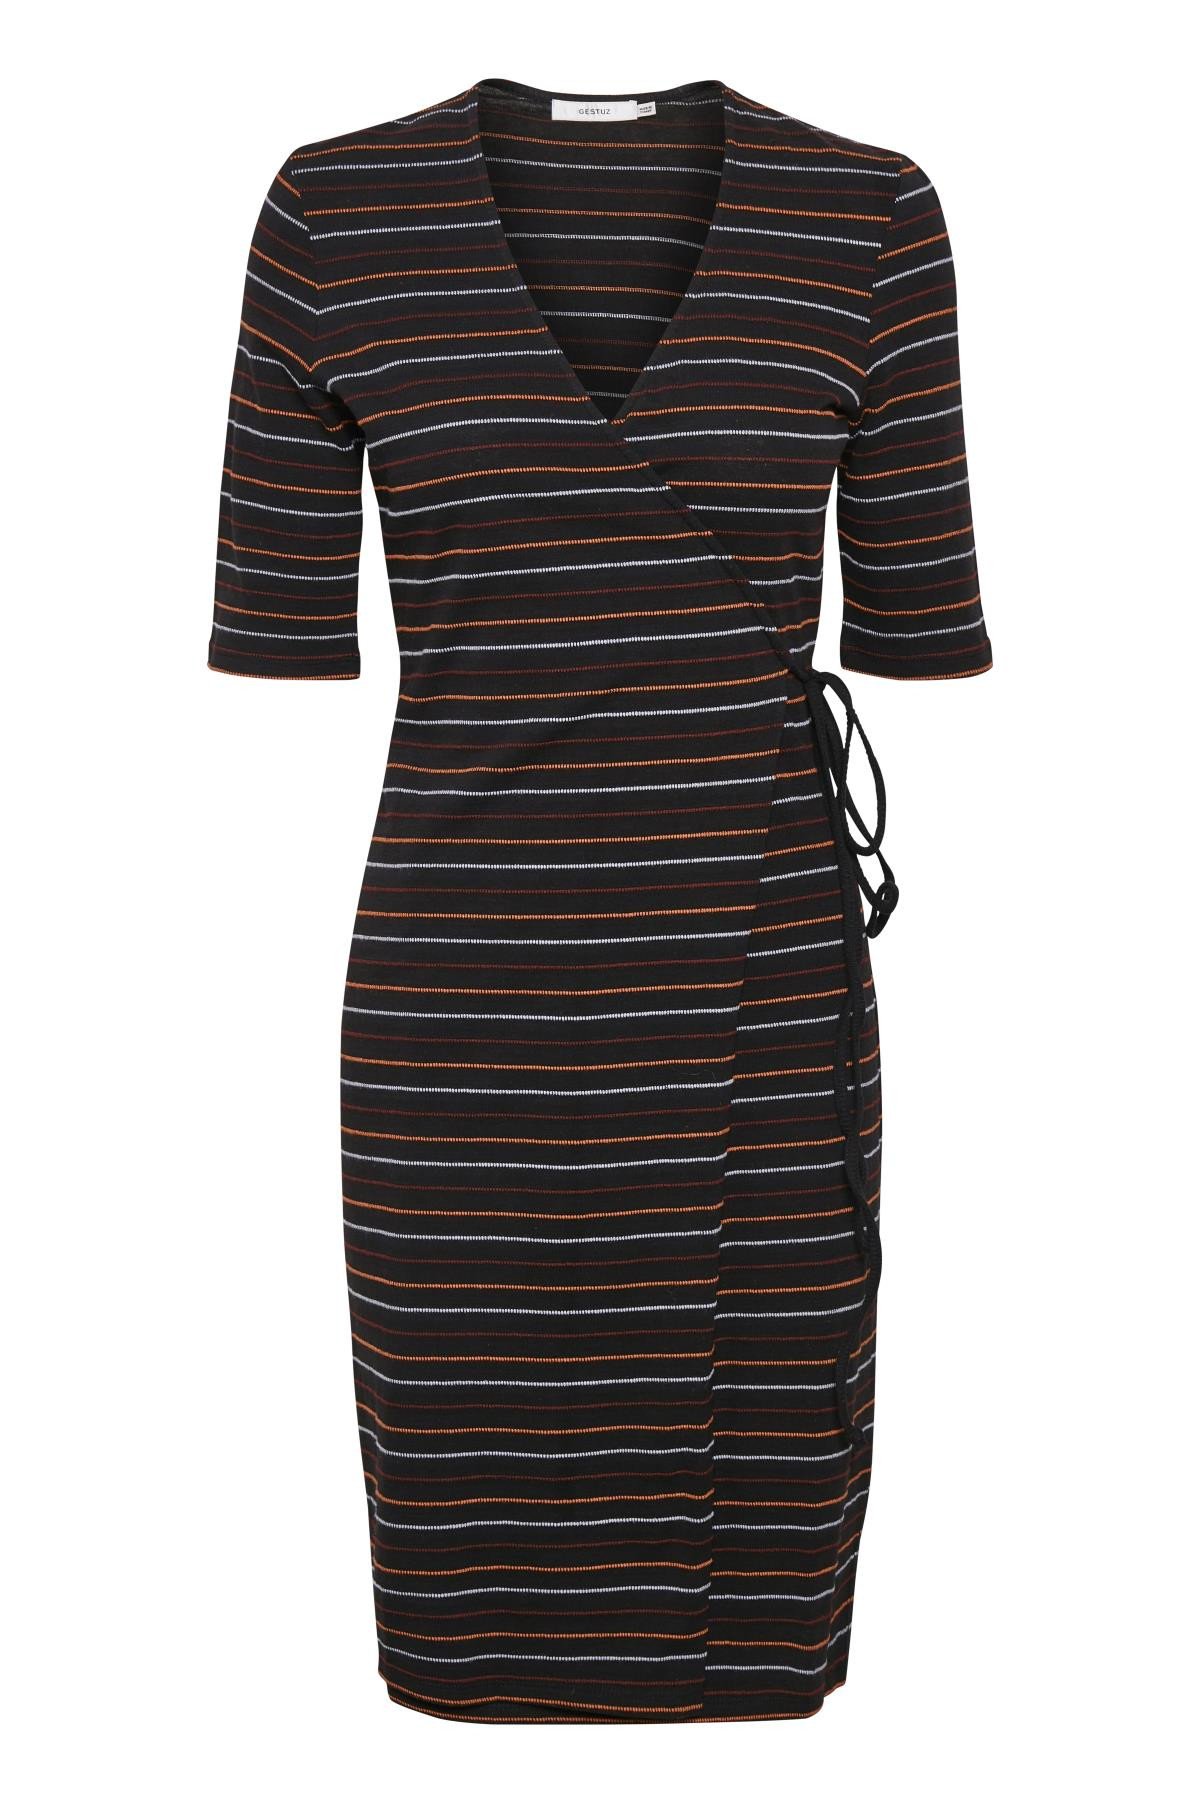 Image of   GESTUZ TERRIGZ SLÅ-OM KJOLE 10903453 (Black W. Stripes 90616, S)